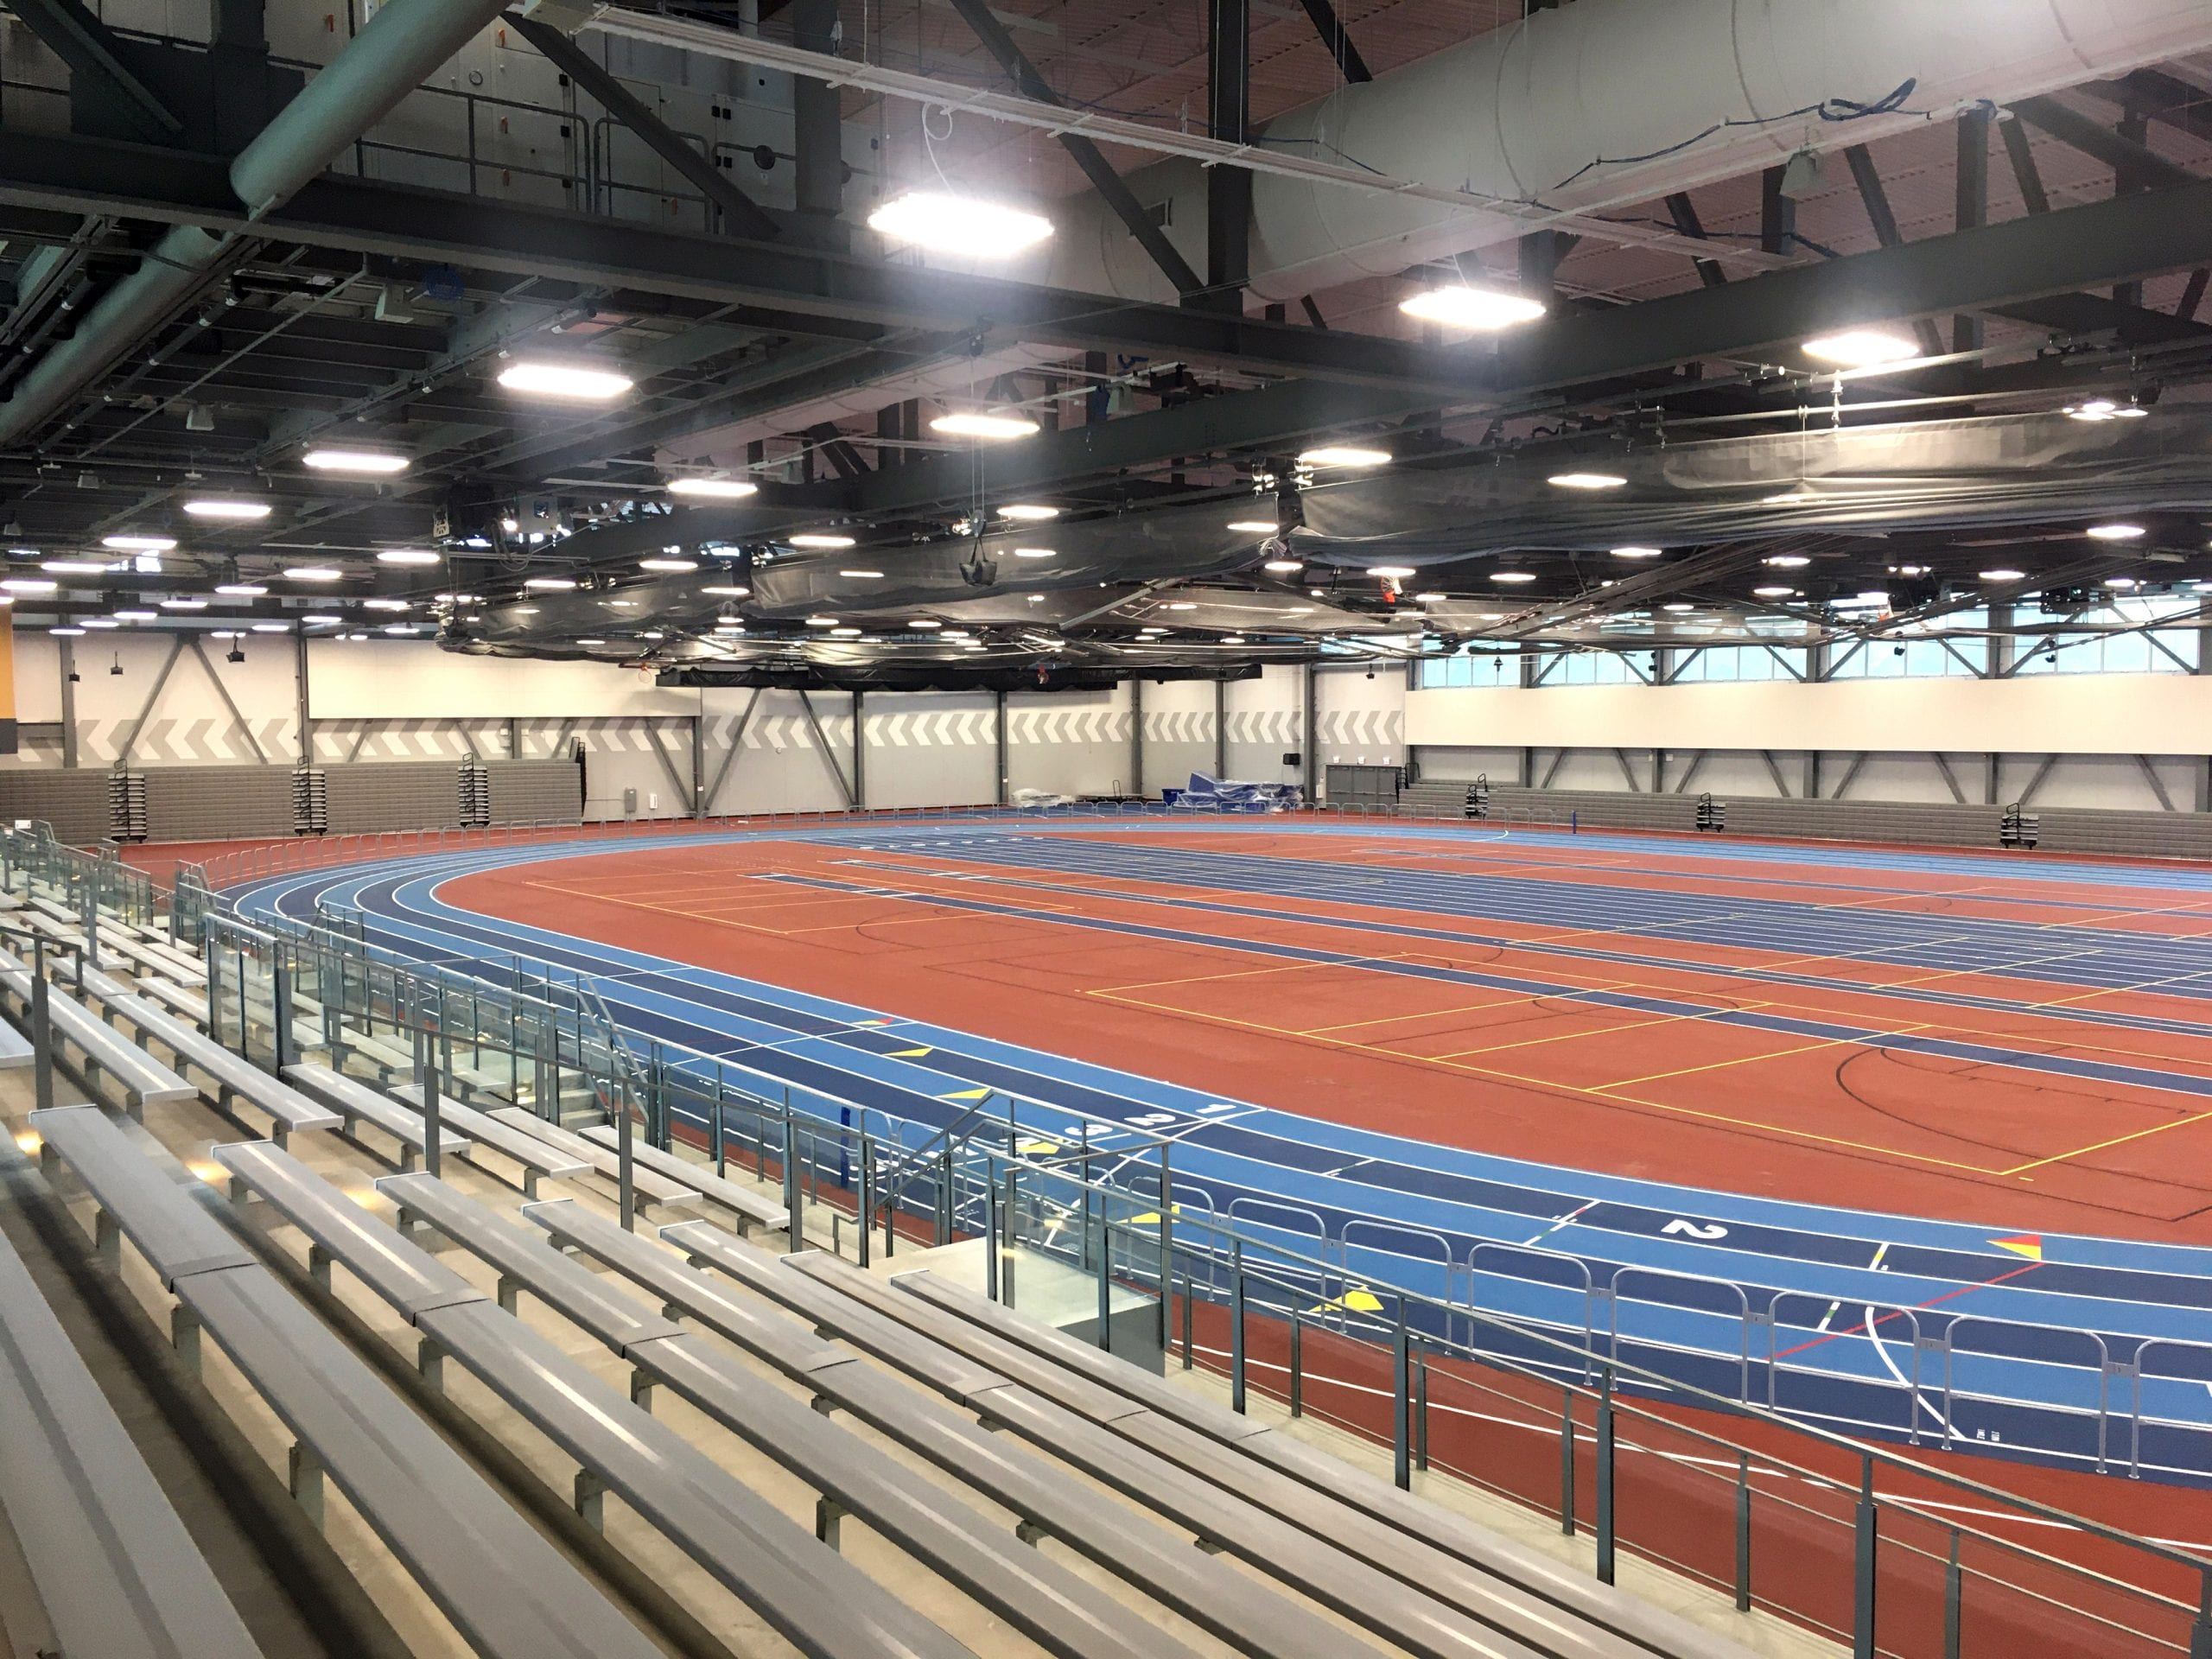 Gately Track and Field Interior